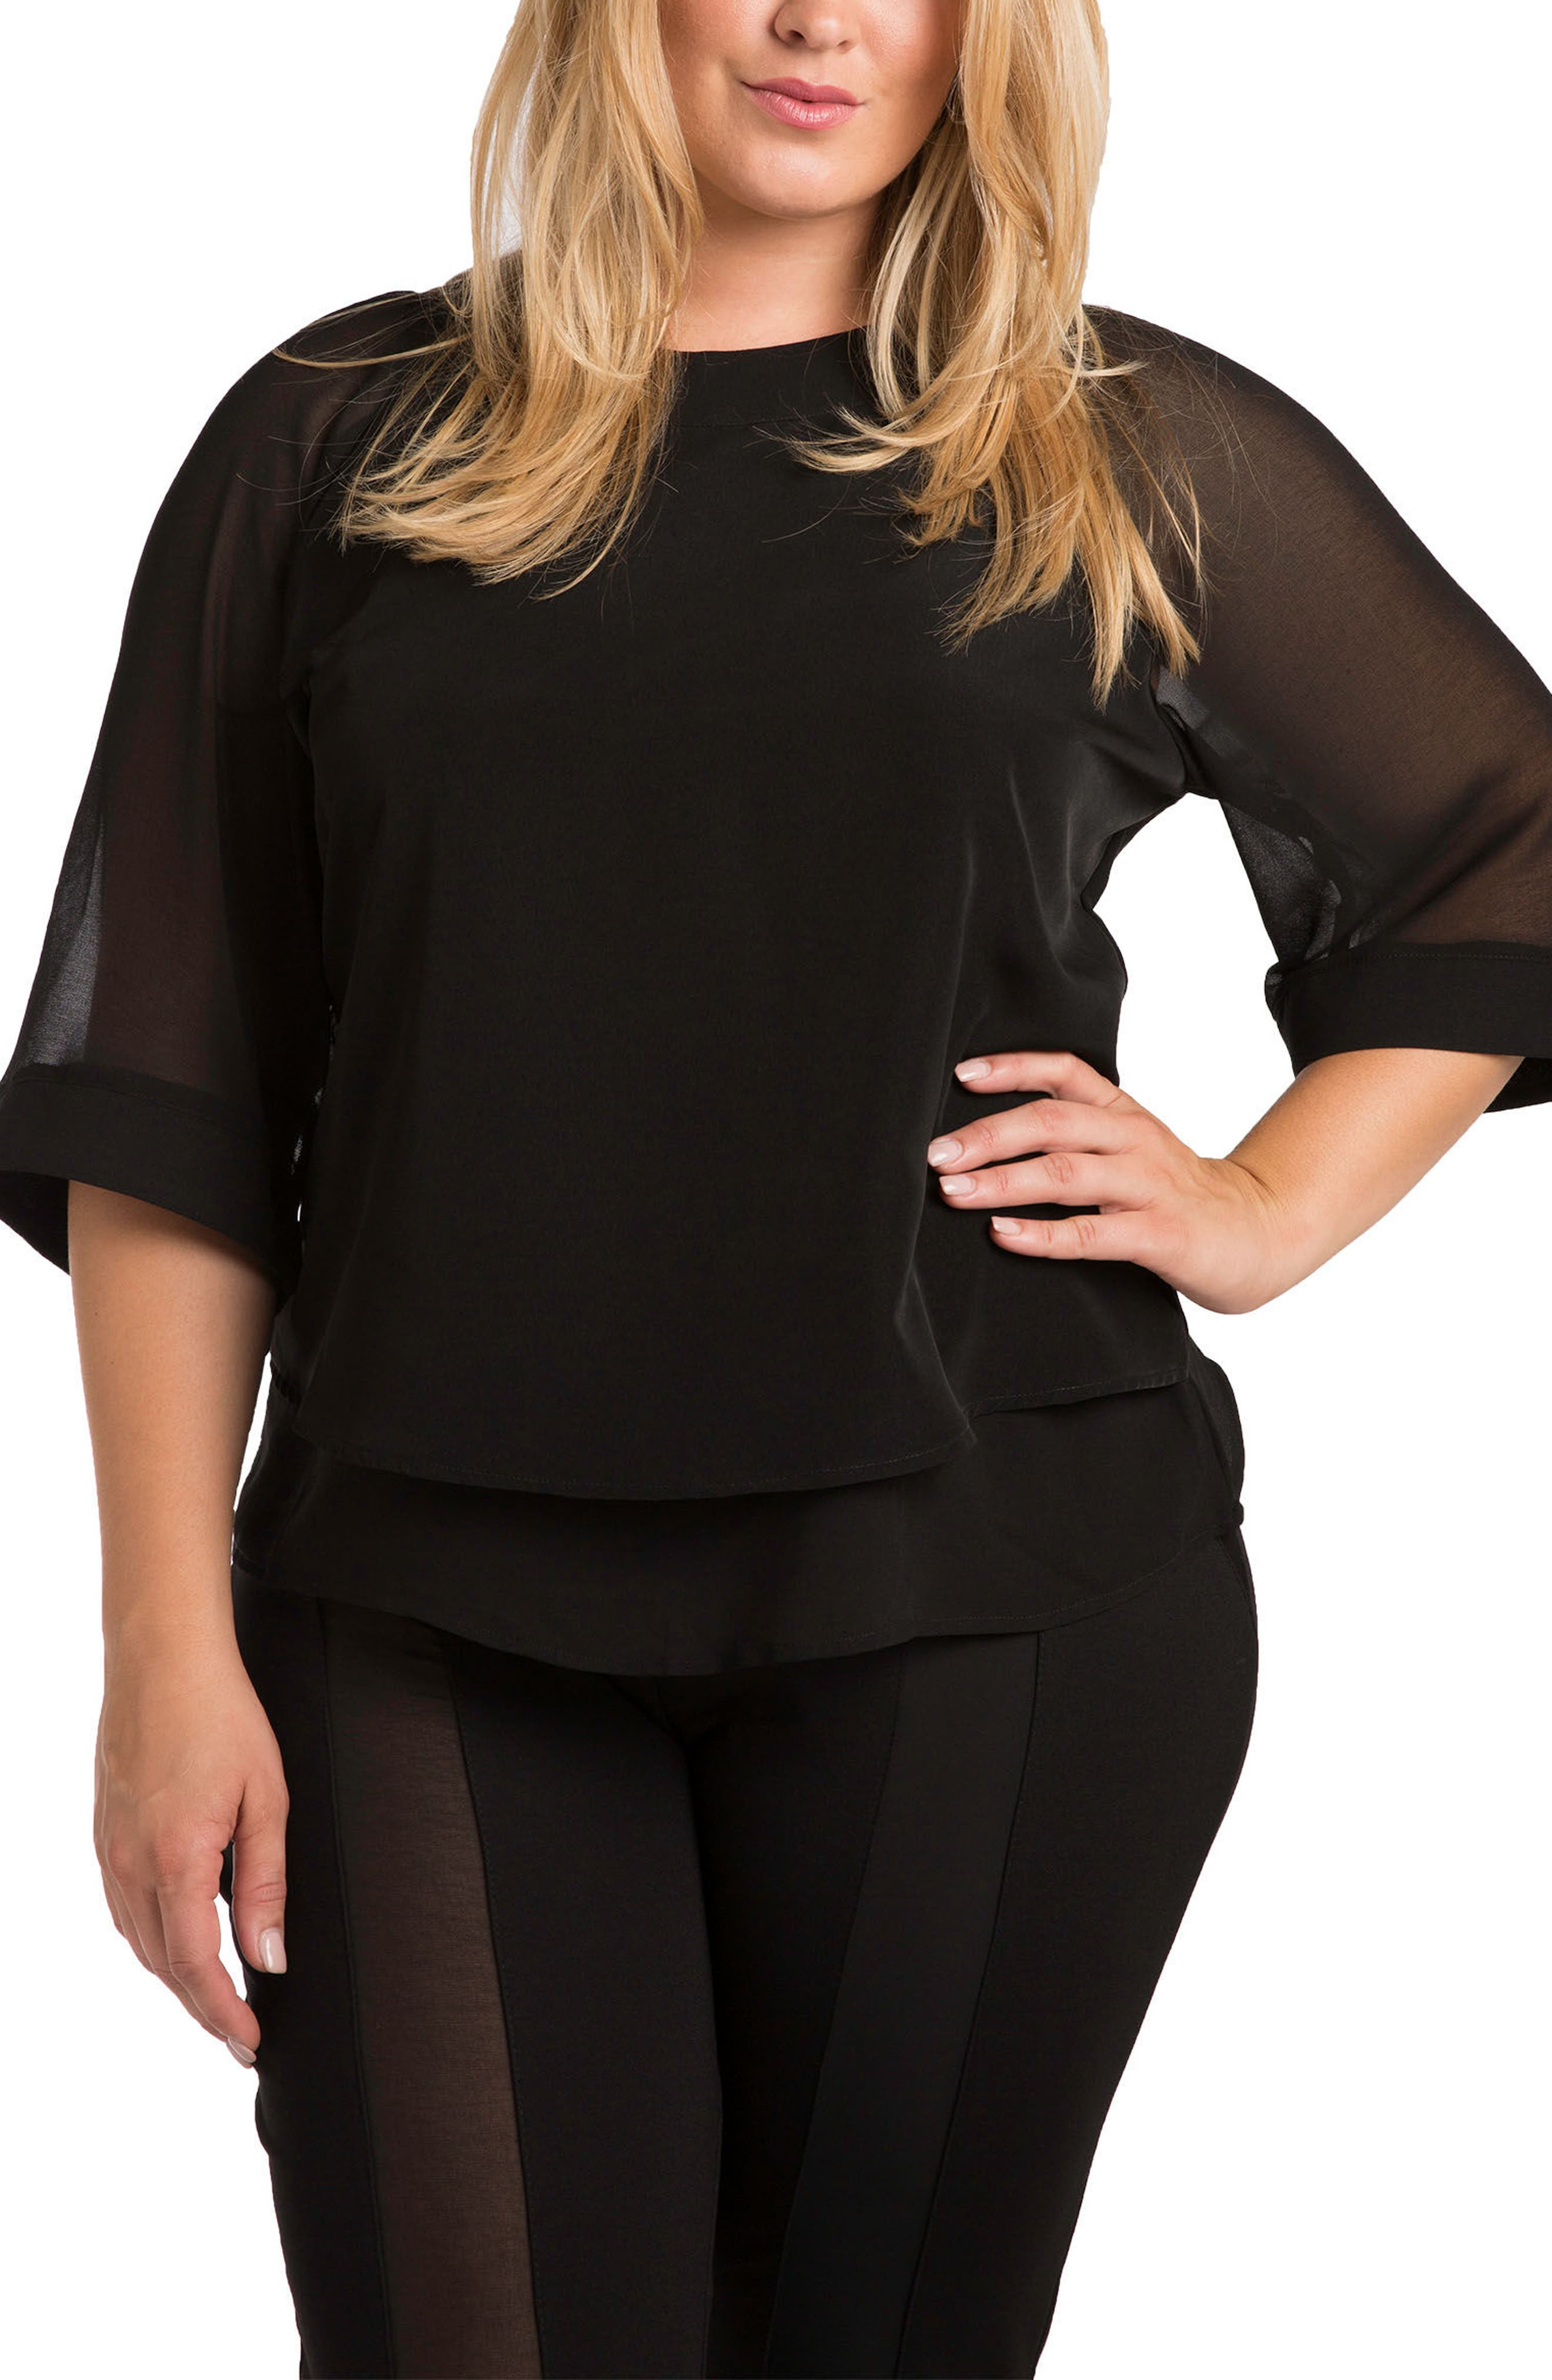 STANDARDS & PRACTICES, Milla Sheer Skimmer Top, Main thumbnail 1, color, 001